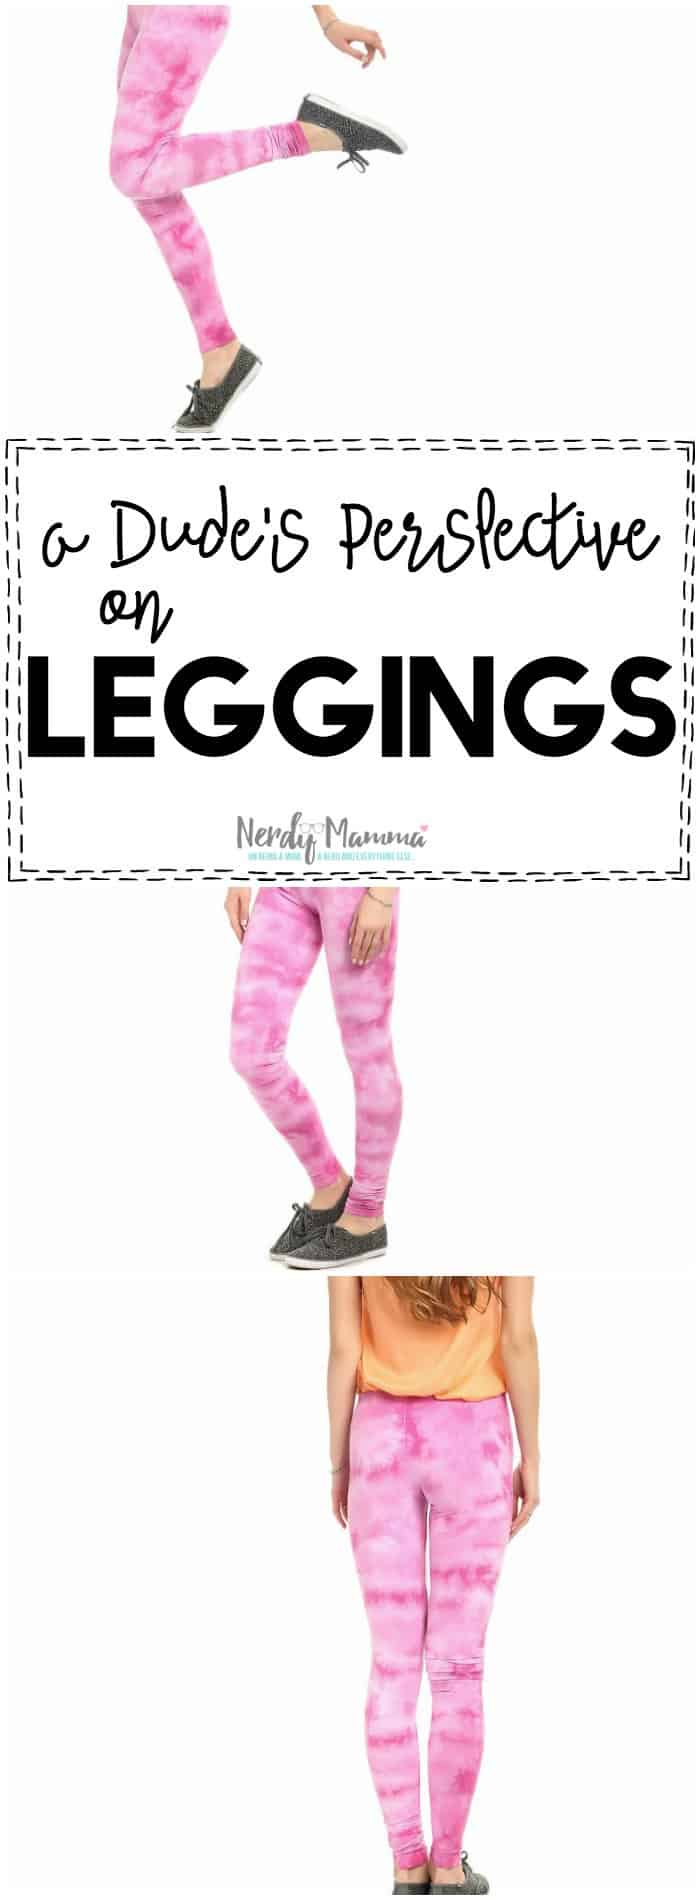 I LOVE this guy's view of leggings! I had no idea...LOL!